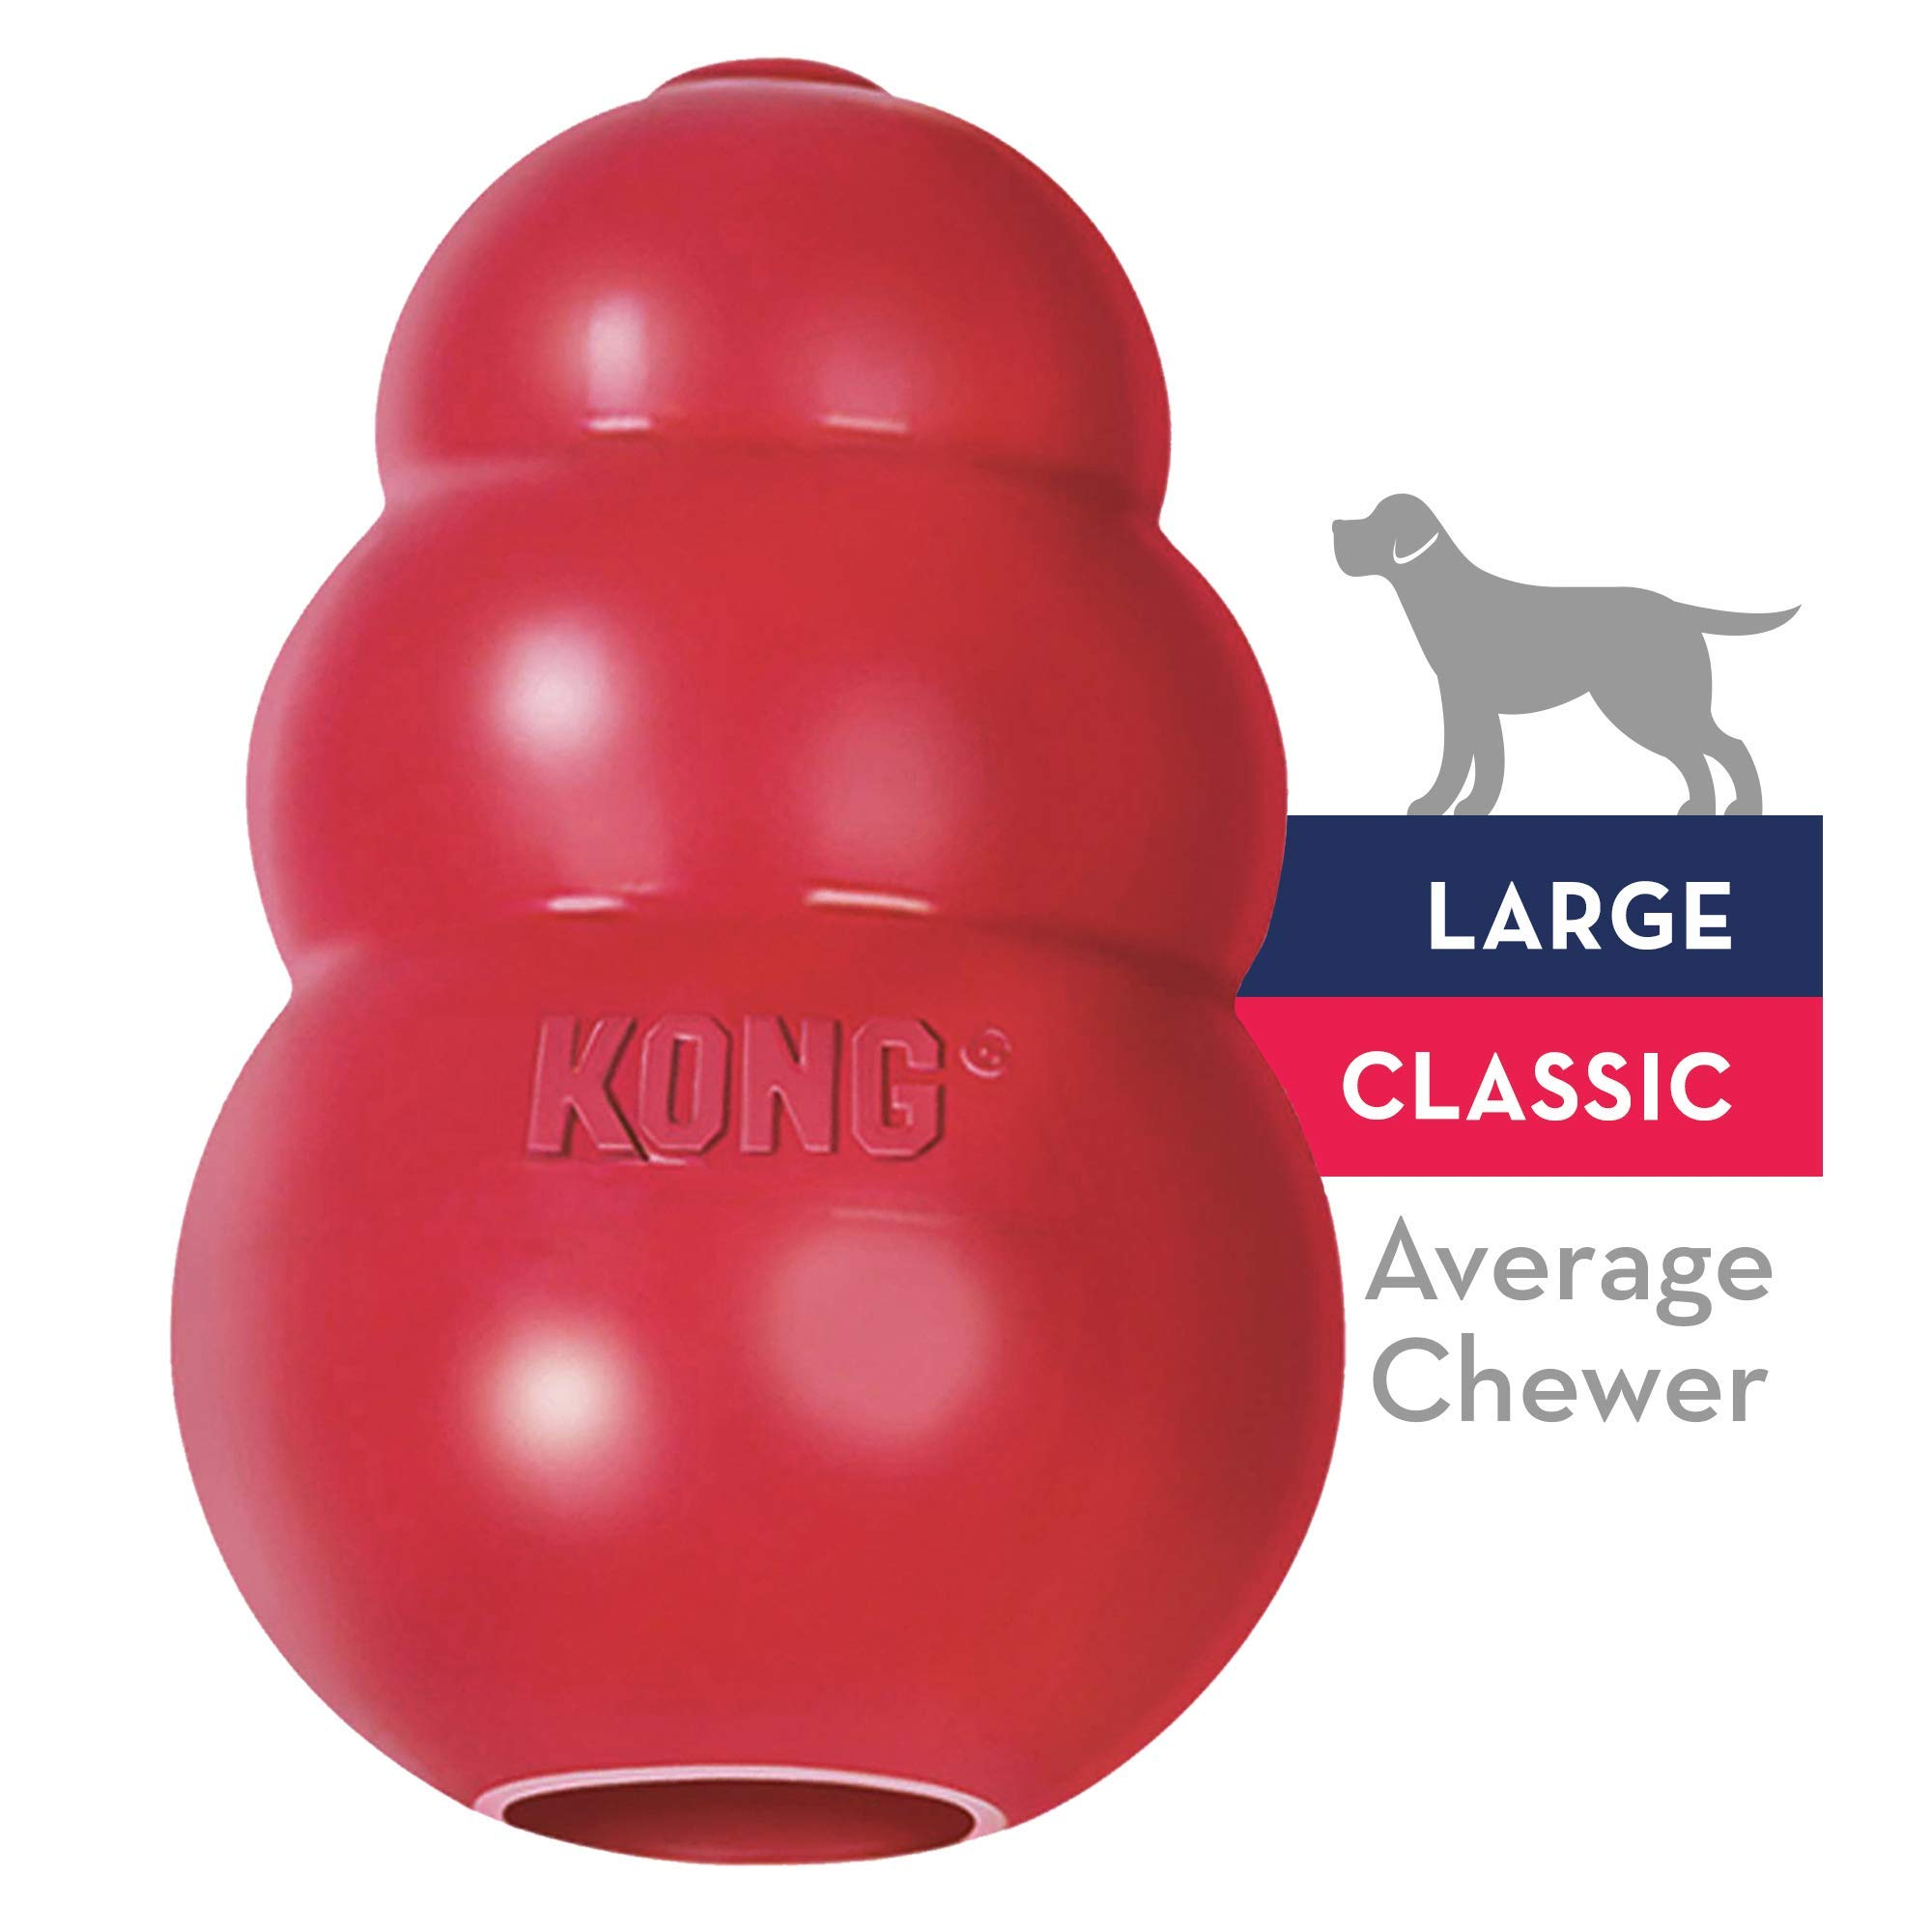 KONG Classic Dog Toy, Large, Red by KONG